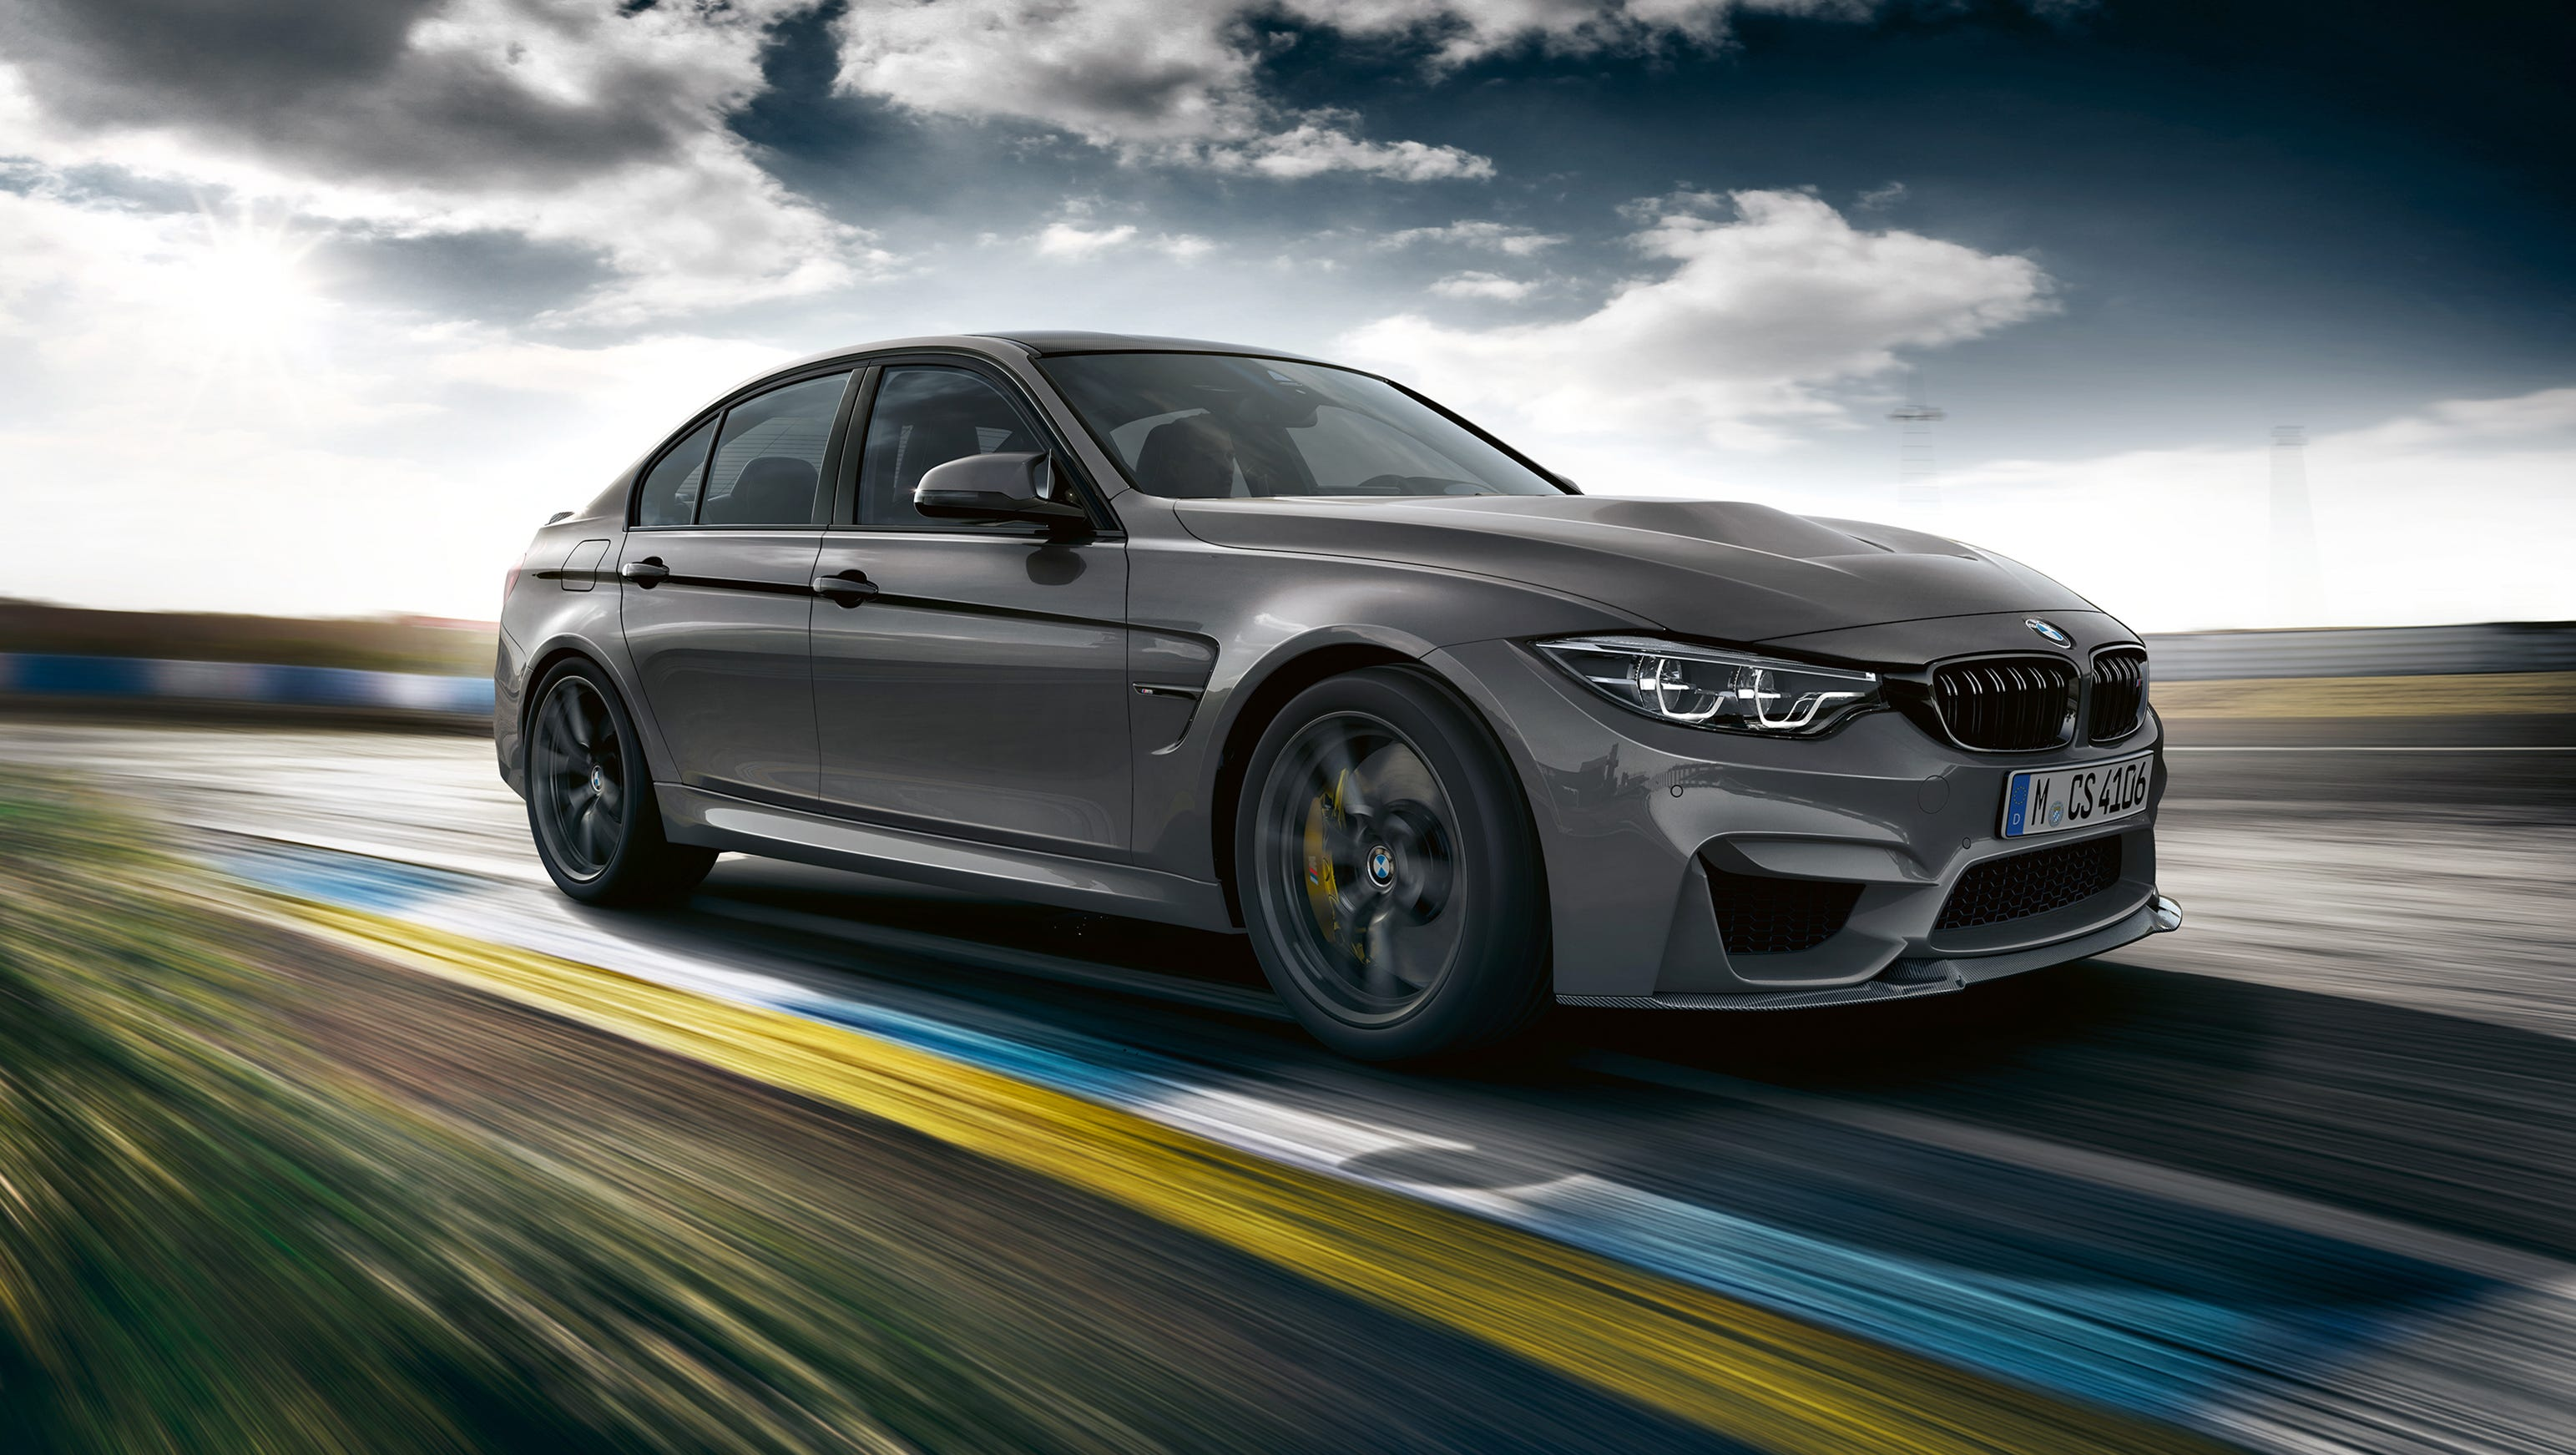 2018 BMW M3 CS, European model